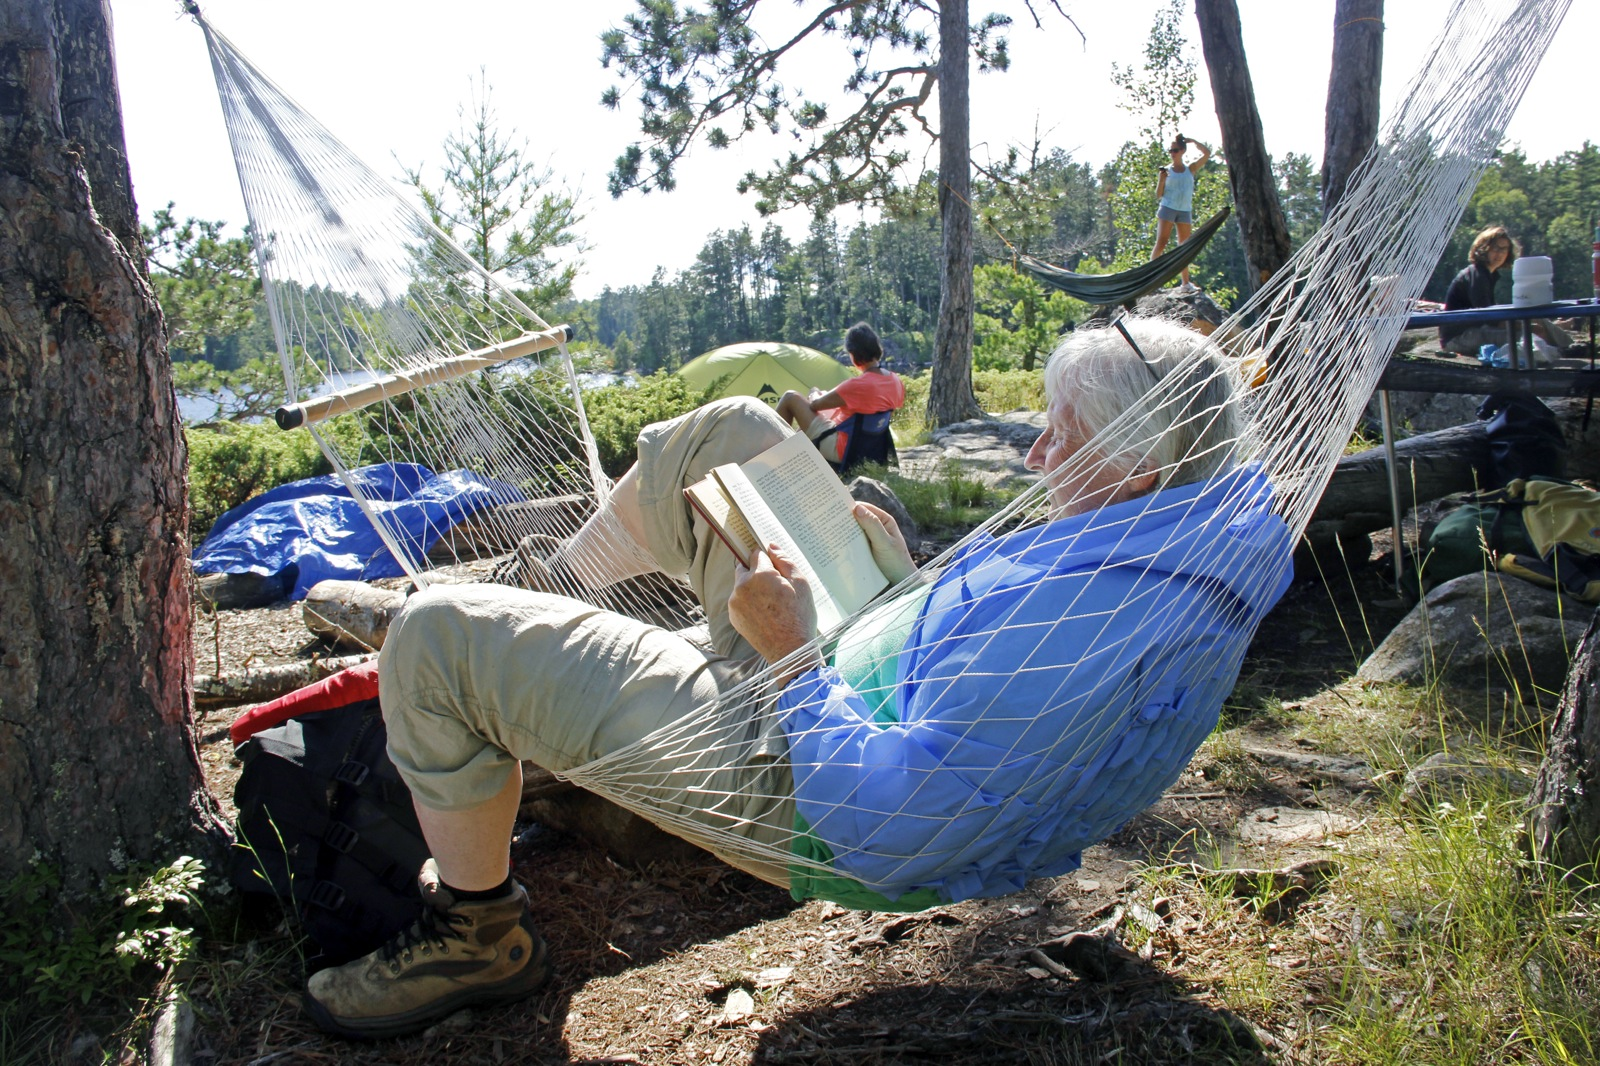 A woman reads a book while sitting in a mesh hammock at her campsite in the Boundary Waters.